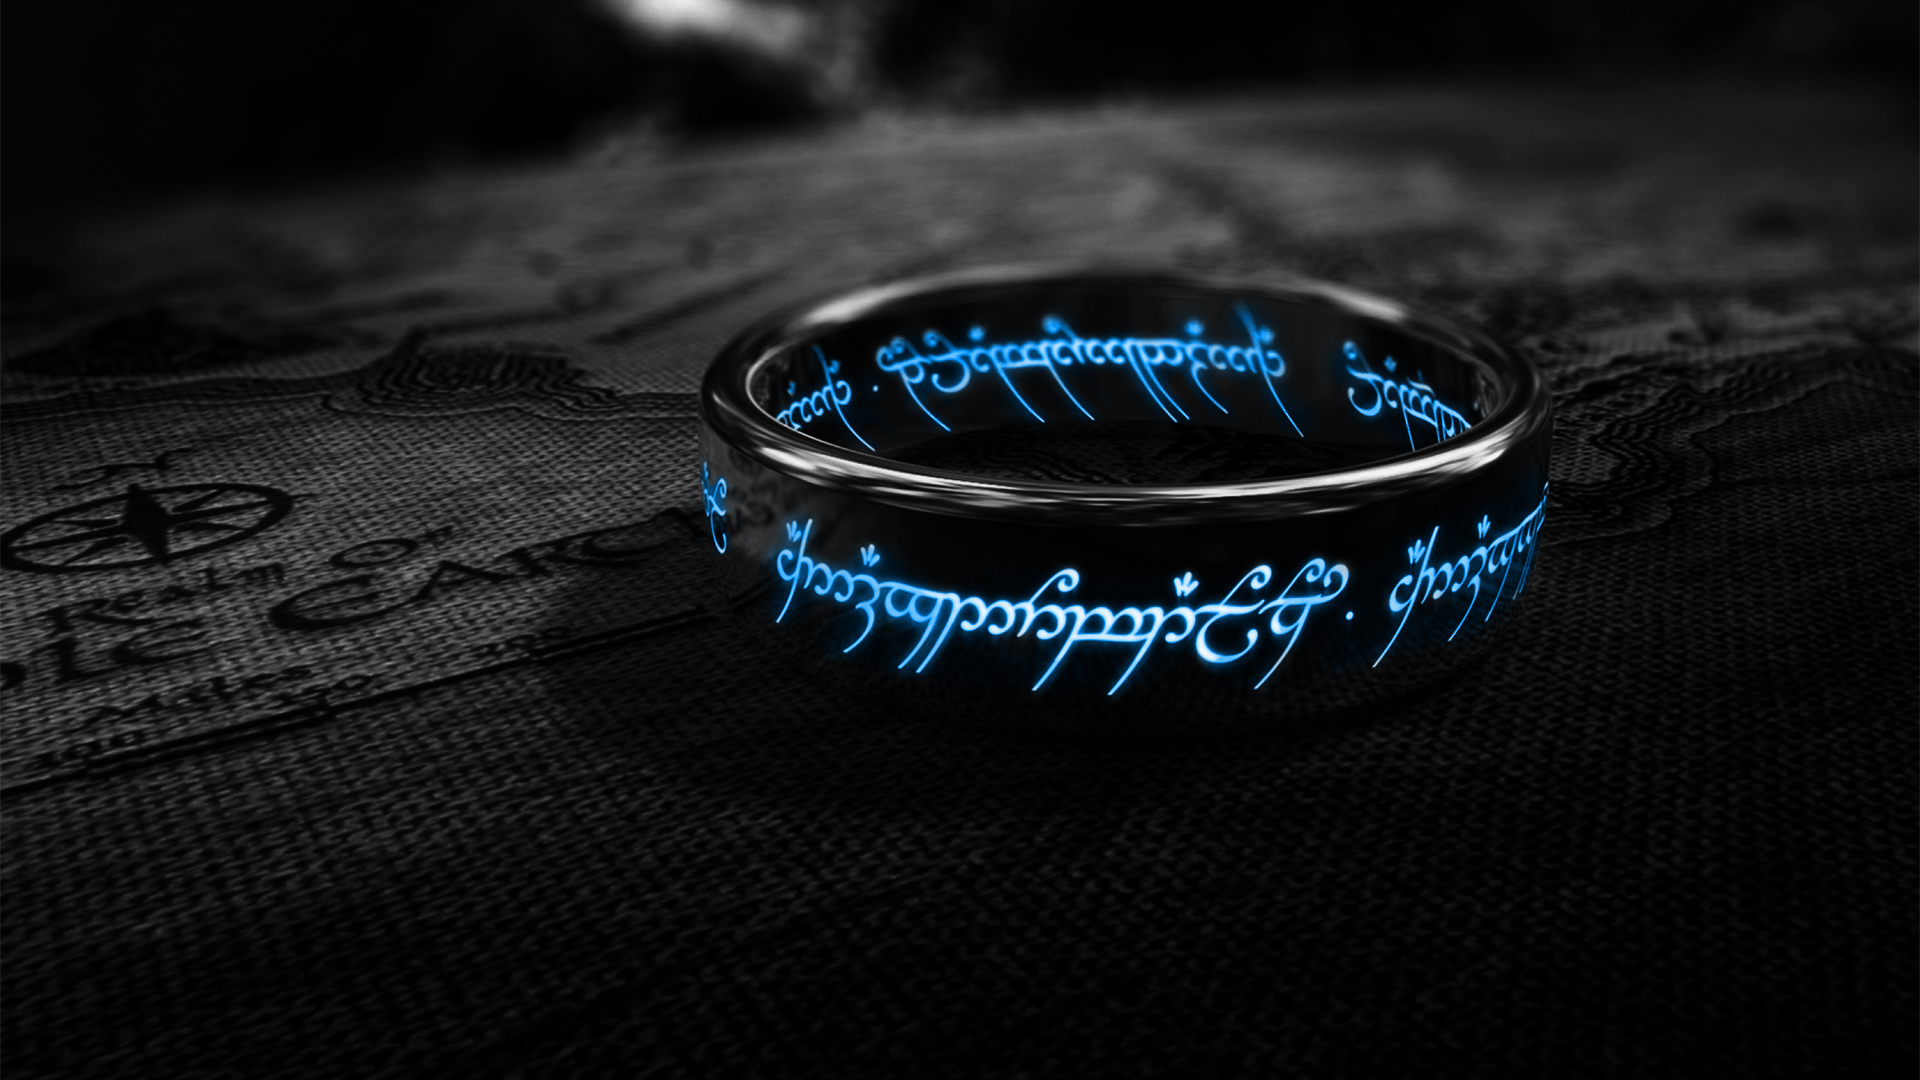 lord of the rings hd wallpaper